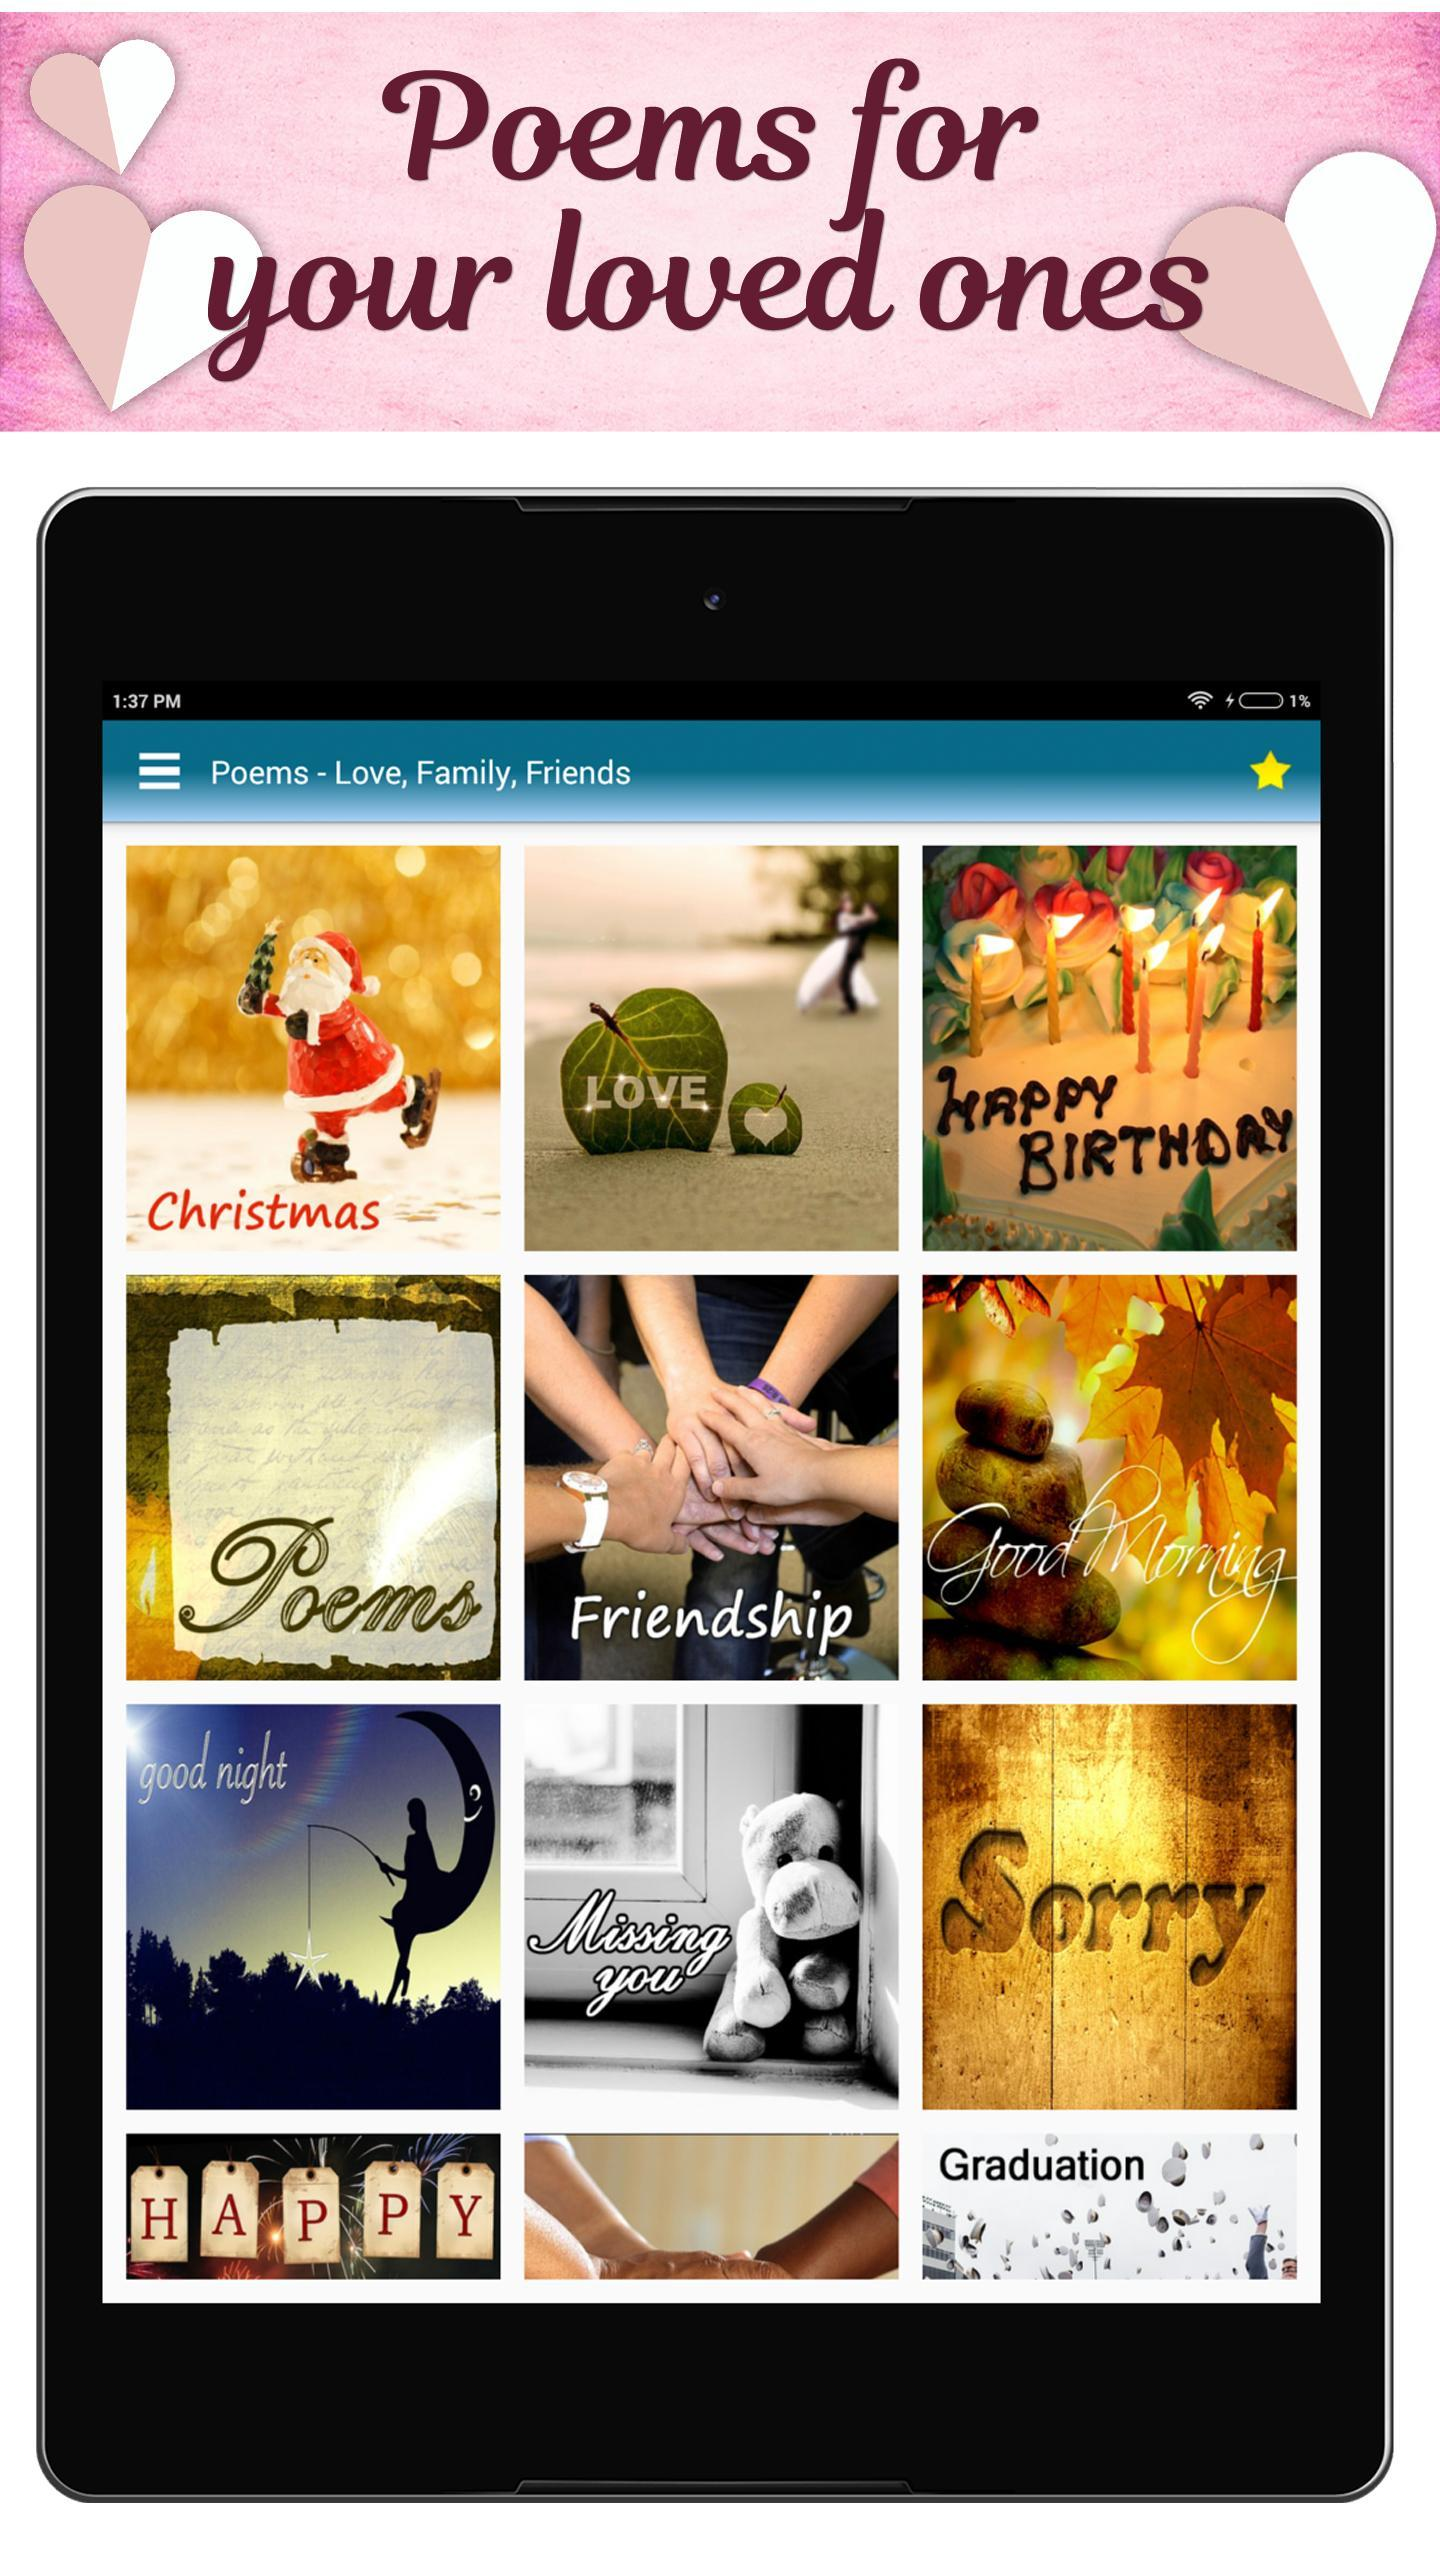 Poems For All Occasions - Love, Family & Friends for Android - APK